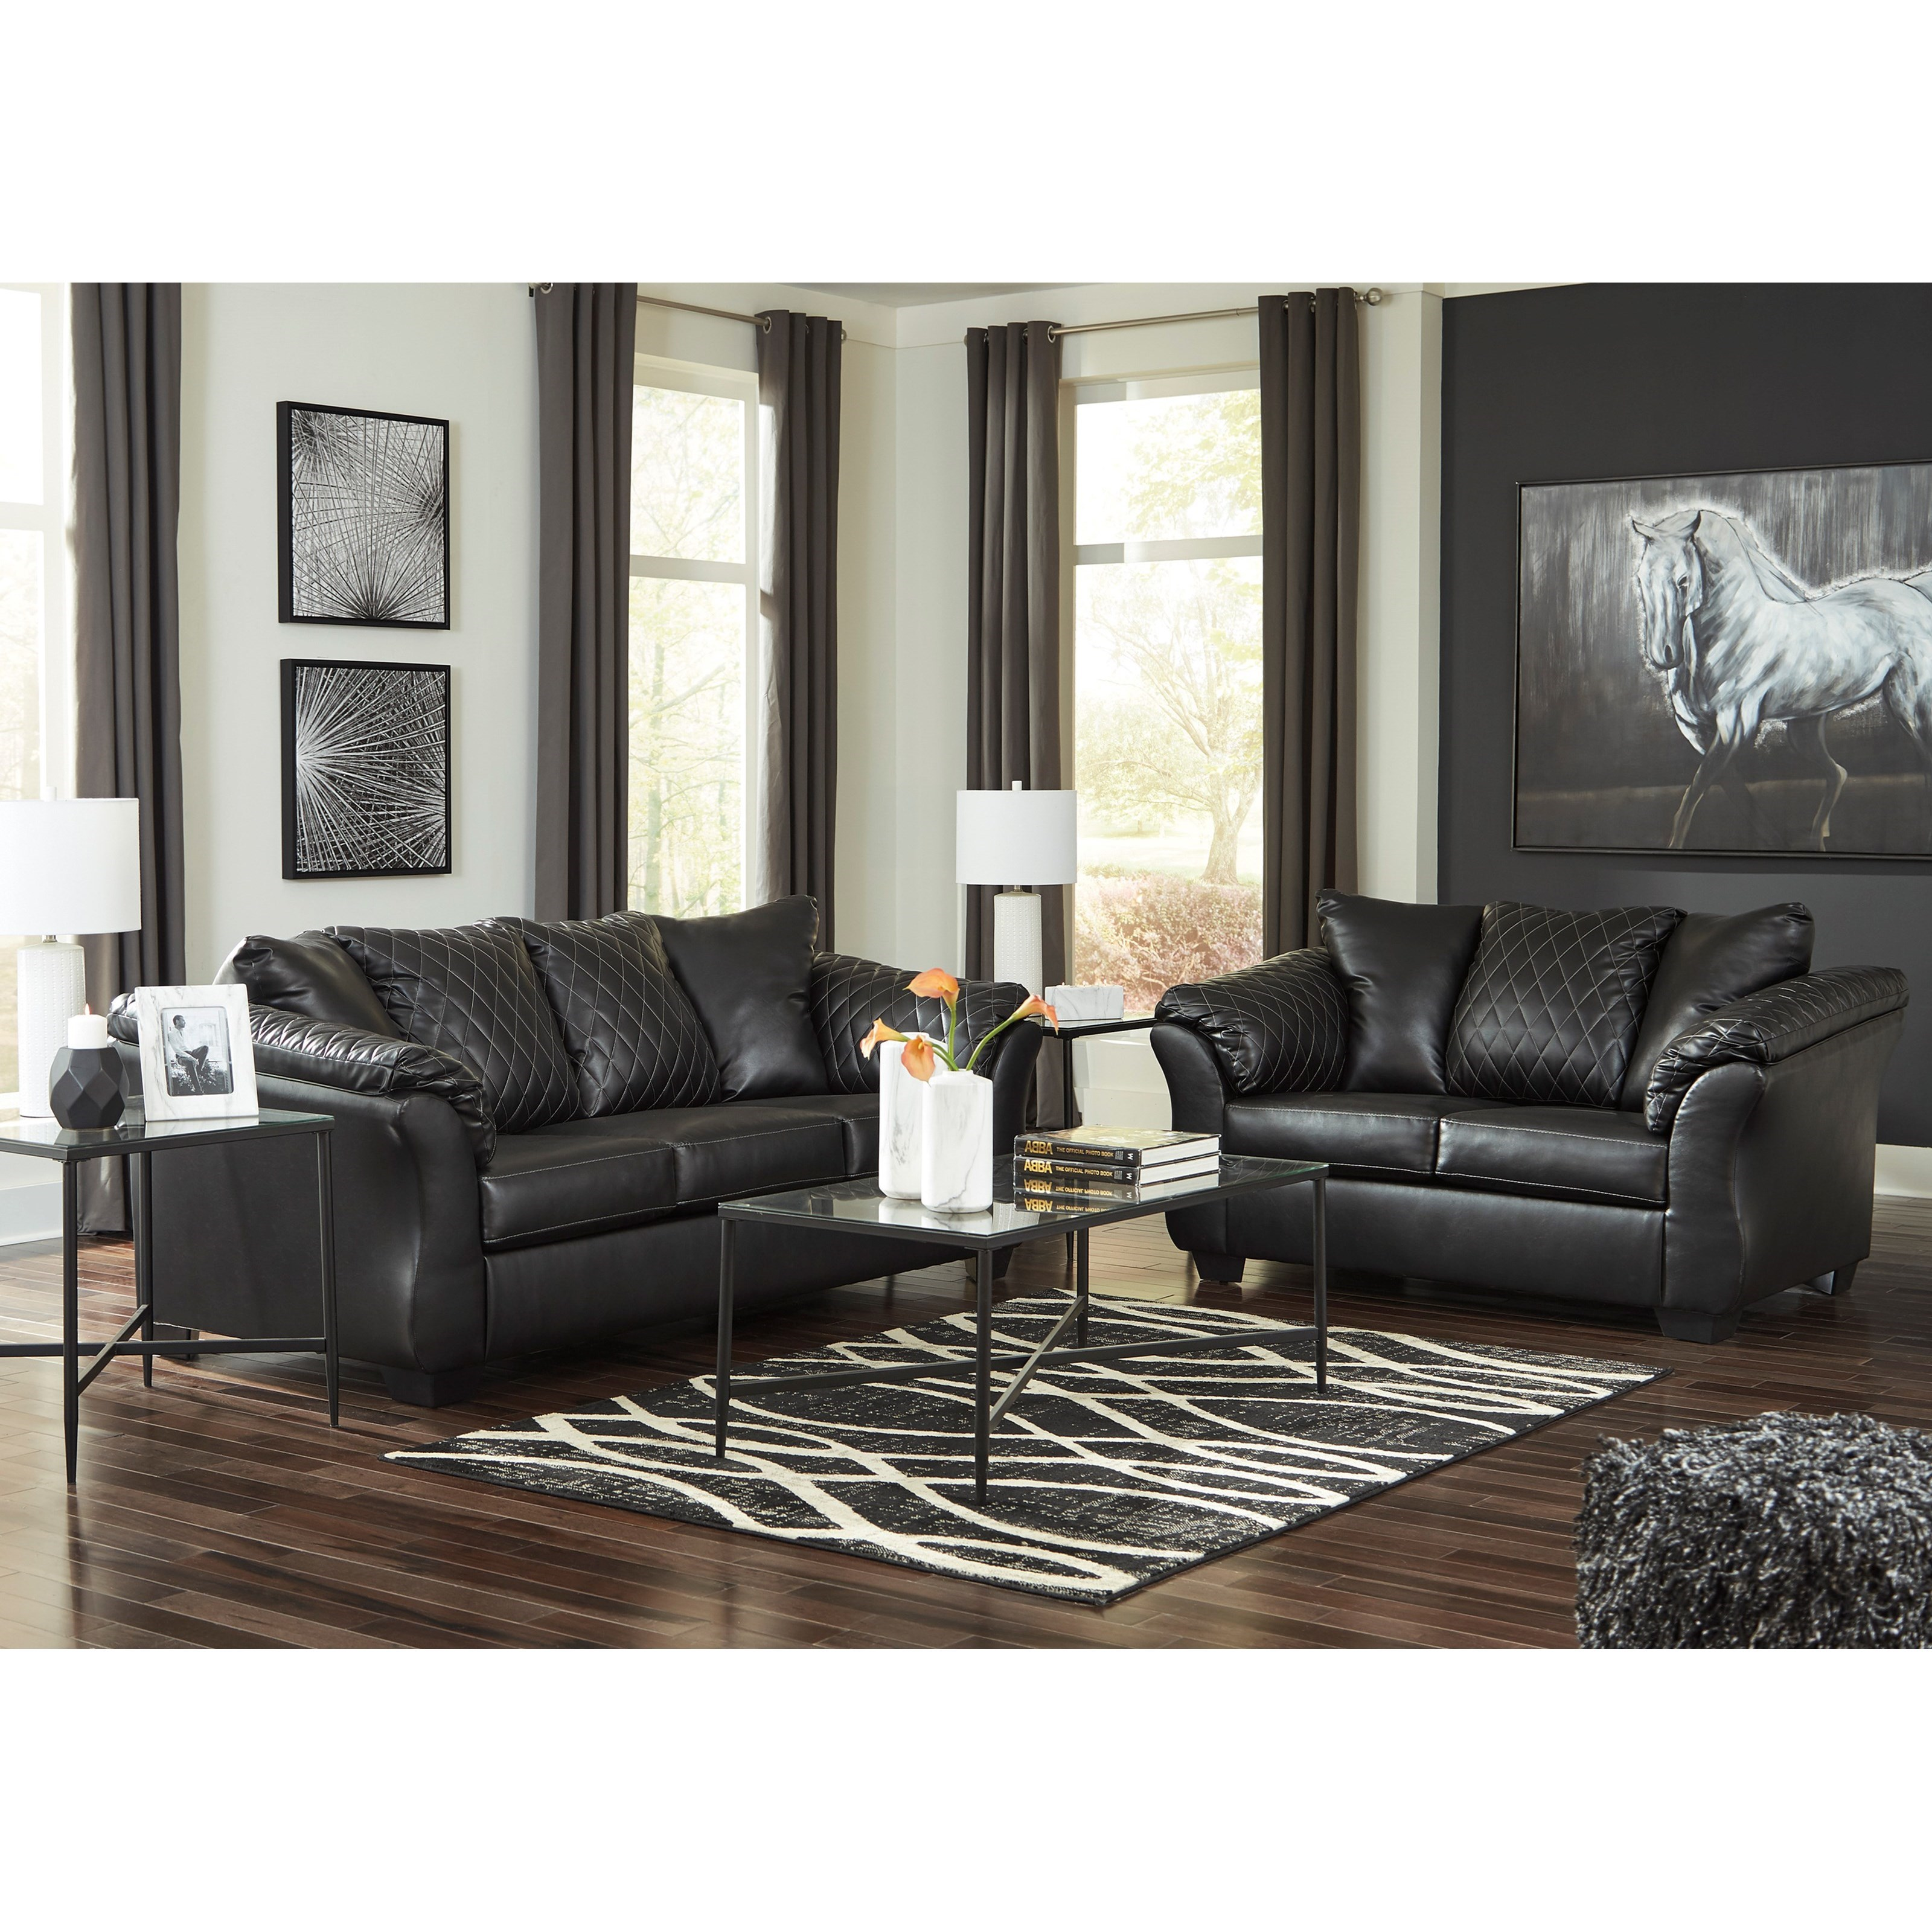 Betrillo Stationary Living Room Group by Signature Design by Ashley at Houston's Yuma Furniture